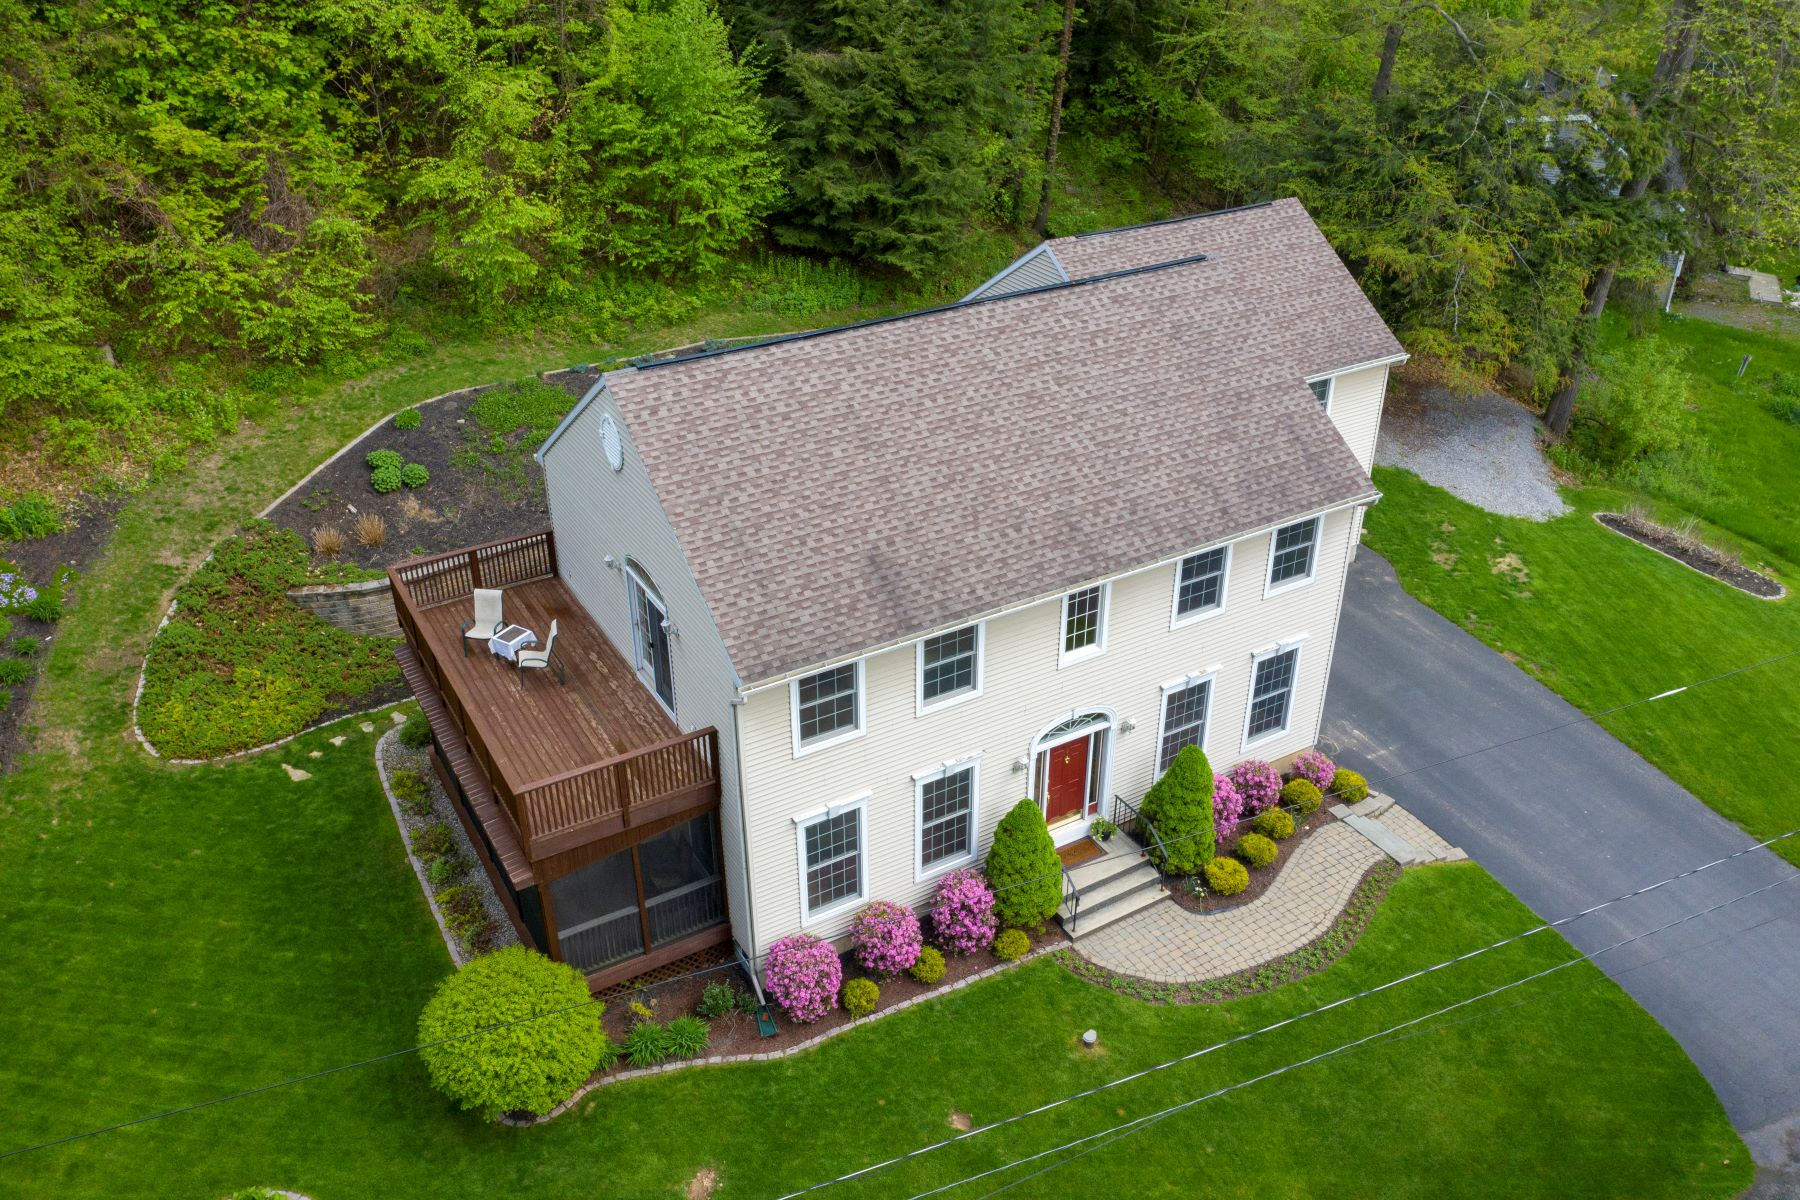 Single Family Homes for Sale at Saratoga Lake Living with A Guest Apt 4 East Cove Road Saratoga Springs, New York 12866 United States